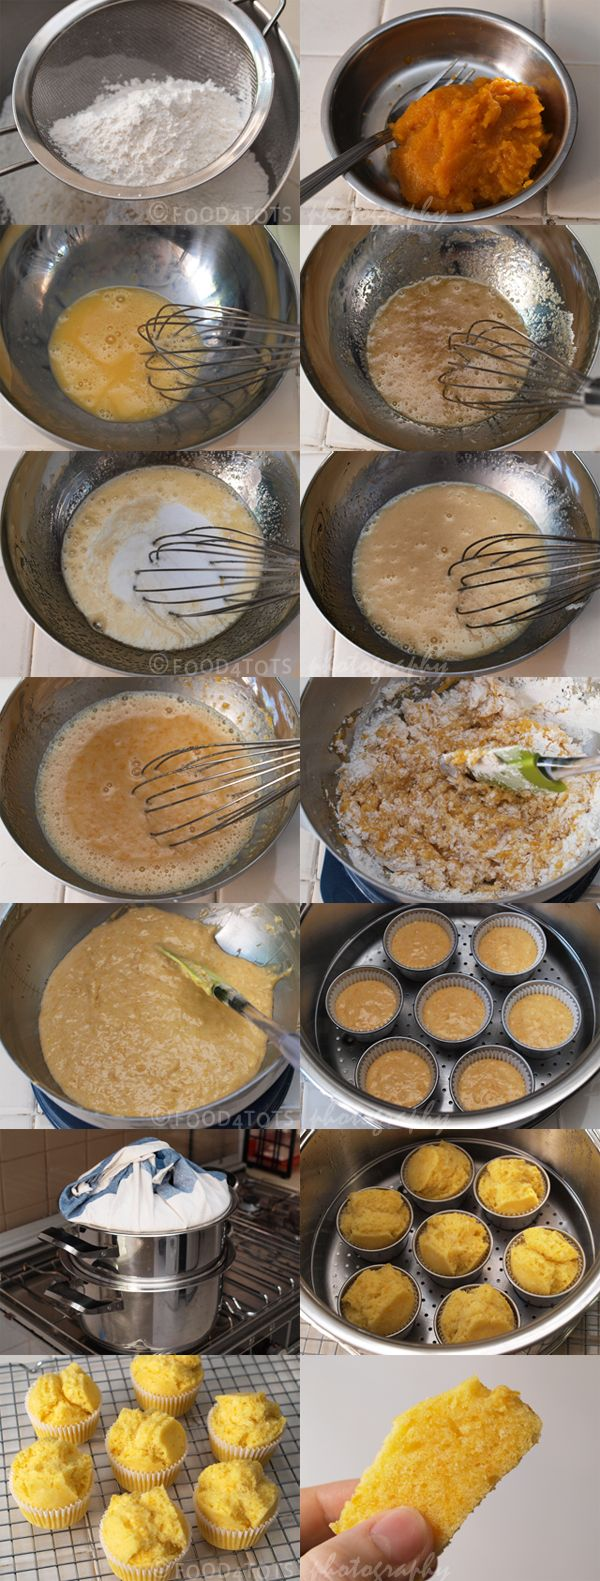 How to make steamed pumpkin muffins - http://food-4tots.com/2011/06/08/steamed-pumpkin-muffins/